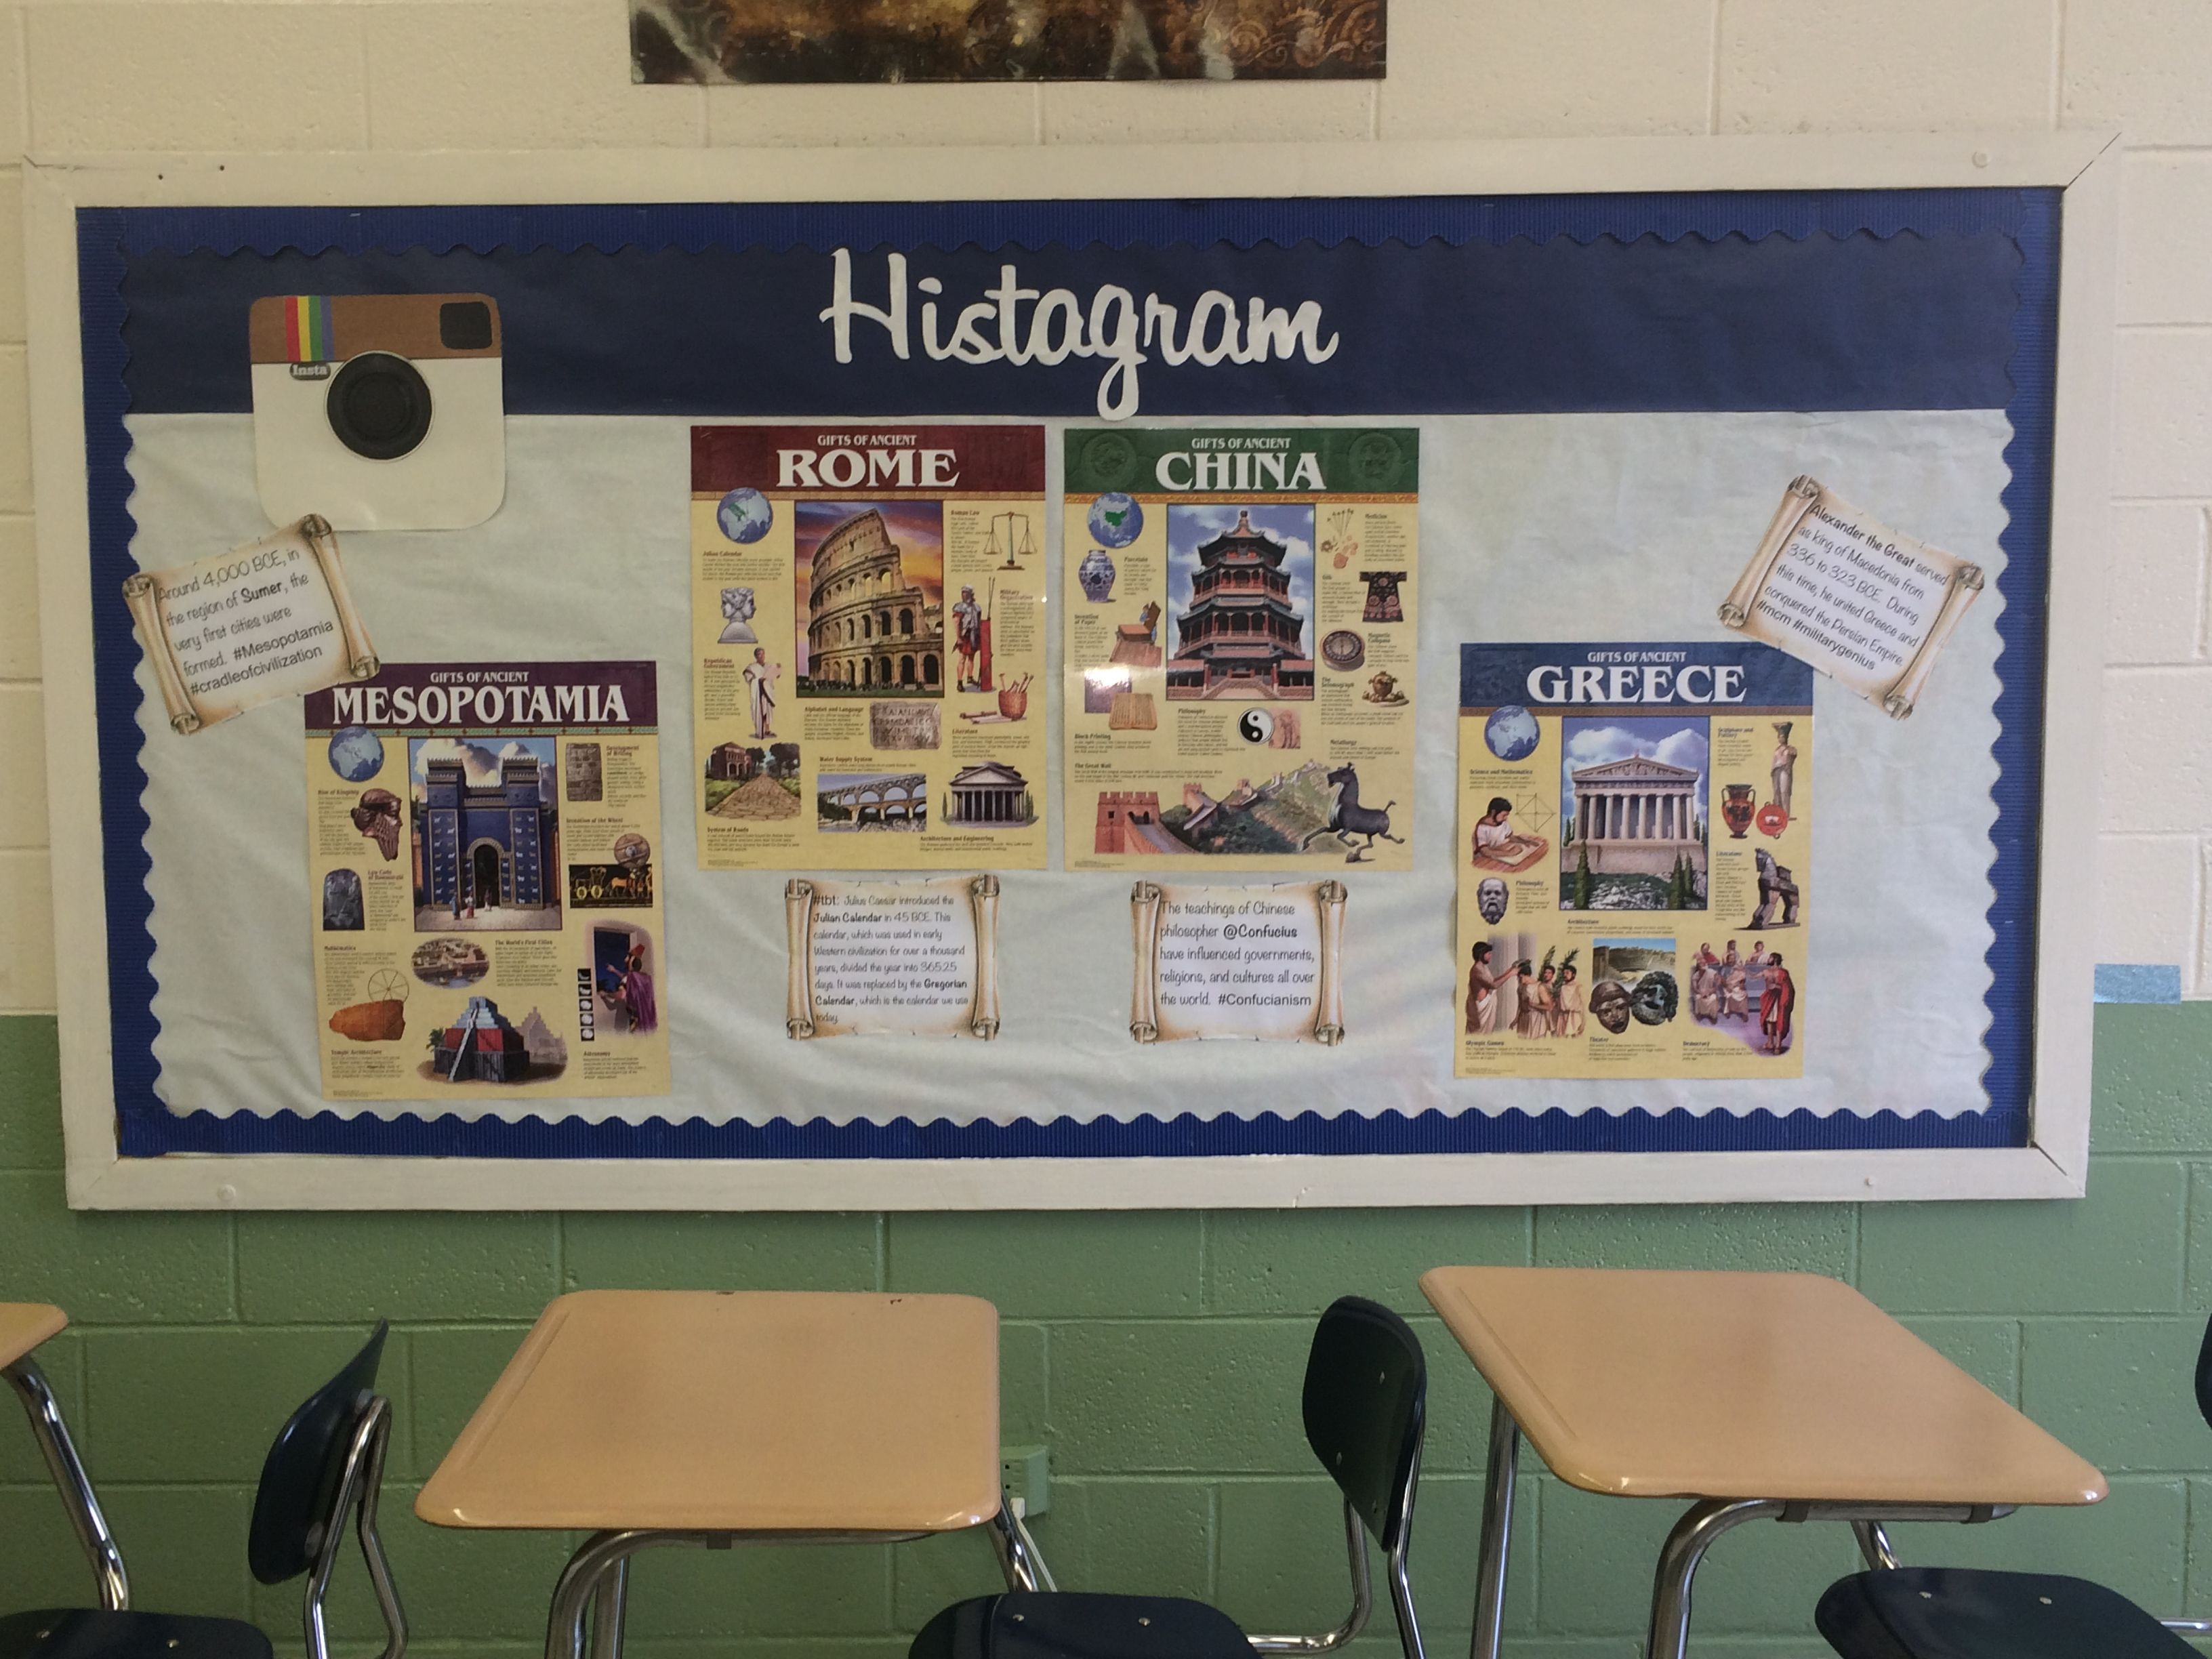 Poster design ideas for school projects - History Classroom Decorations World History Classroom Teaching History Classroom Ideas History Bulletin Boards Historian Middle School Social Studies